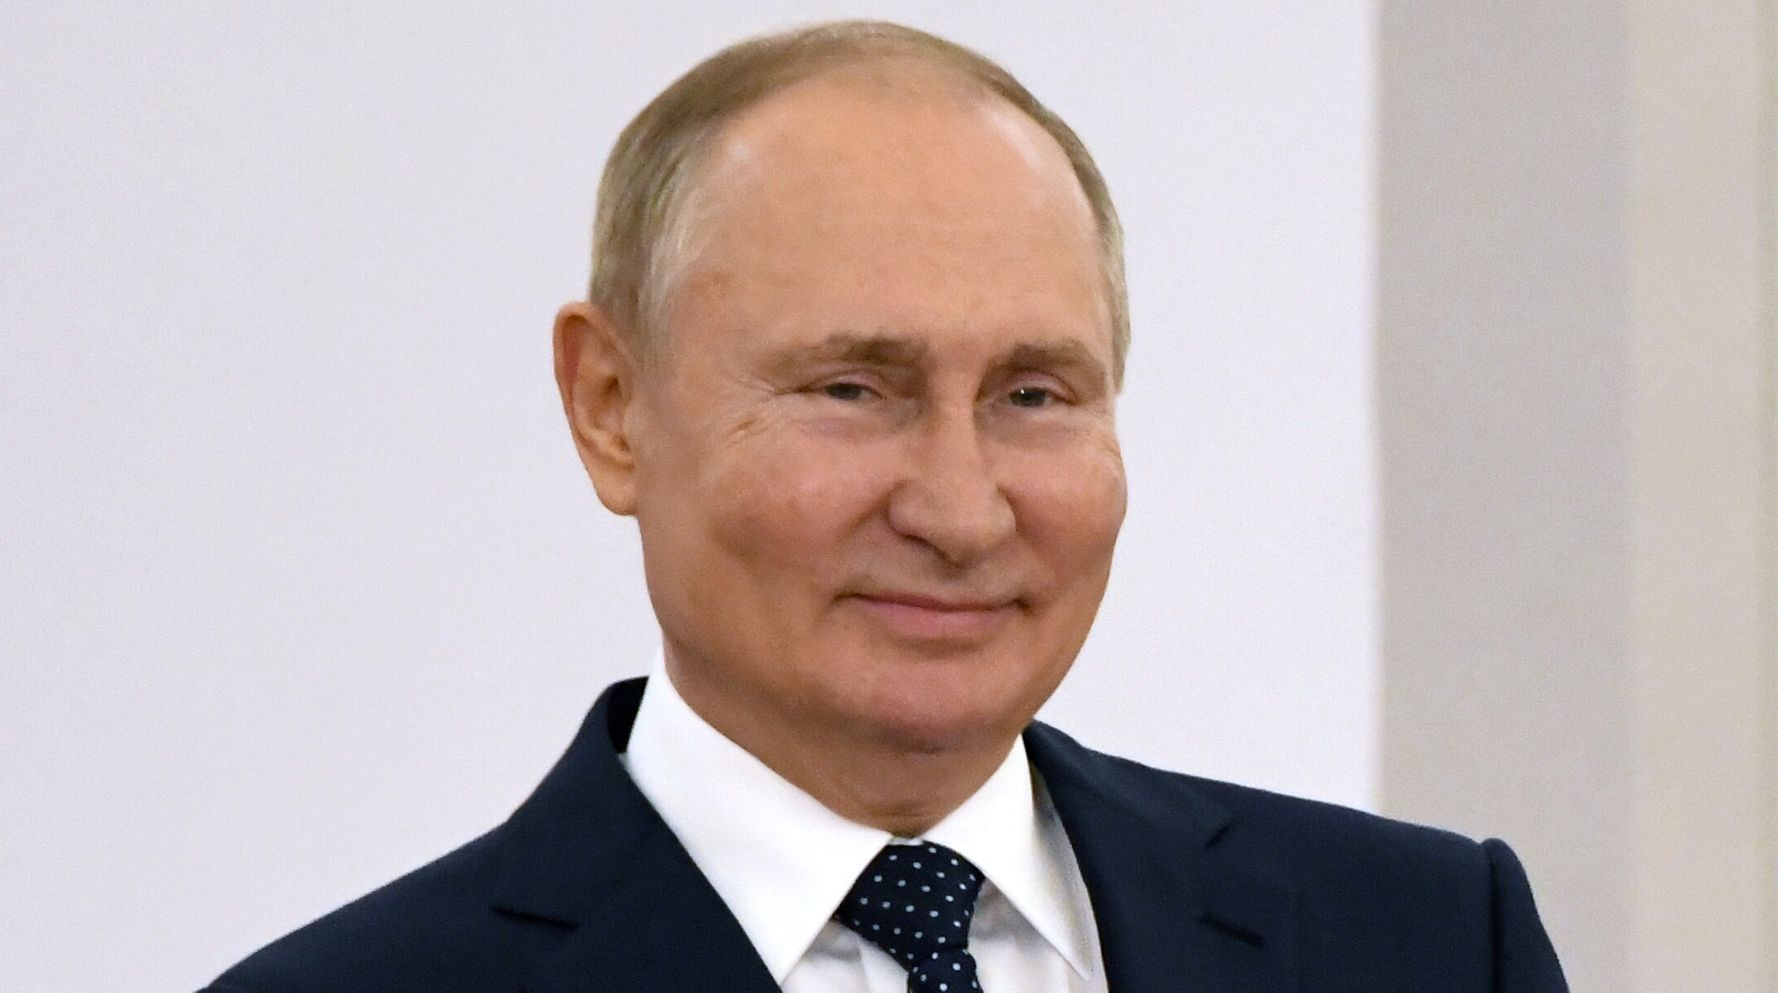 Putin Meets With Assad And Paralympians, Then Self-Isolates Over COVID-19 Cases In Inner Circle